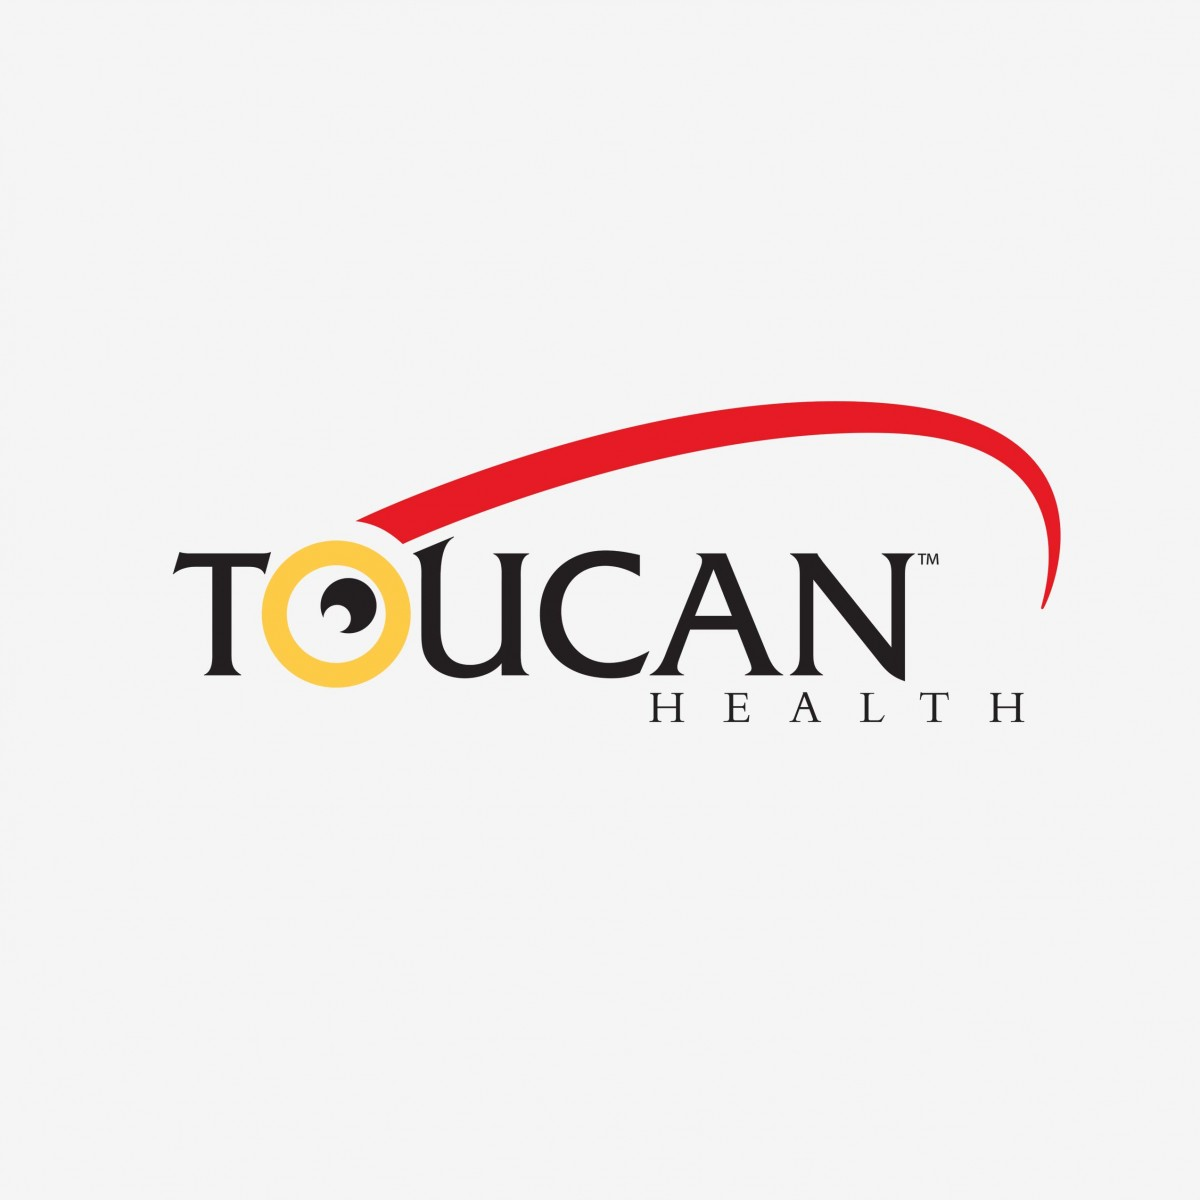 Toucan Health corporate identity